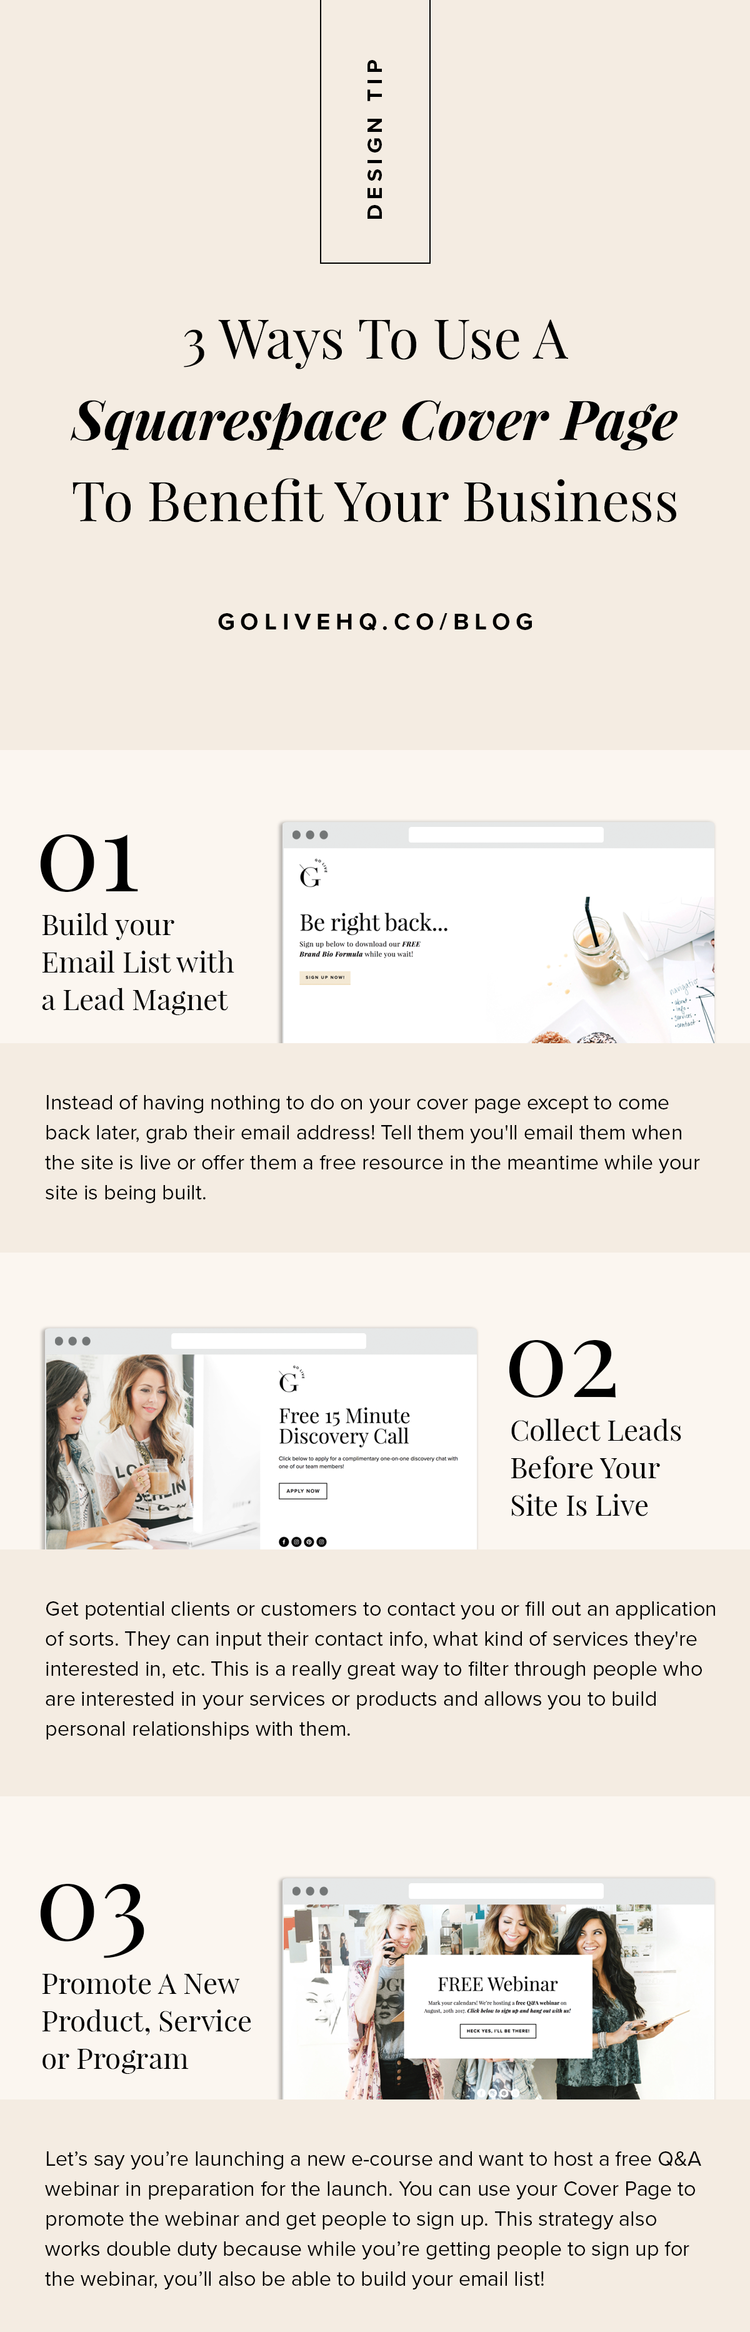 3+Ways+To+Use+A+Squarespace+Cover+Page+To+Benefit+Your+Business+_+By+Go+Live+HQ.png